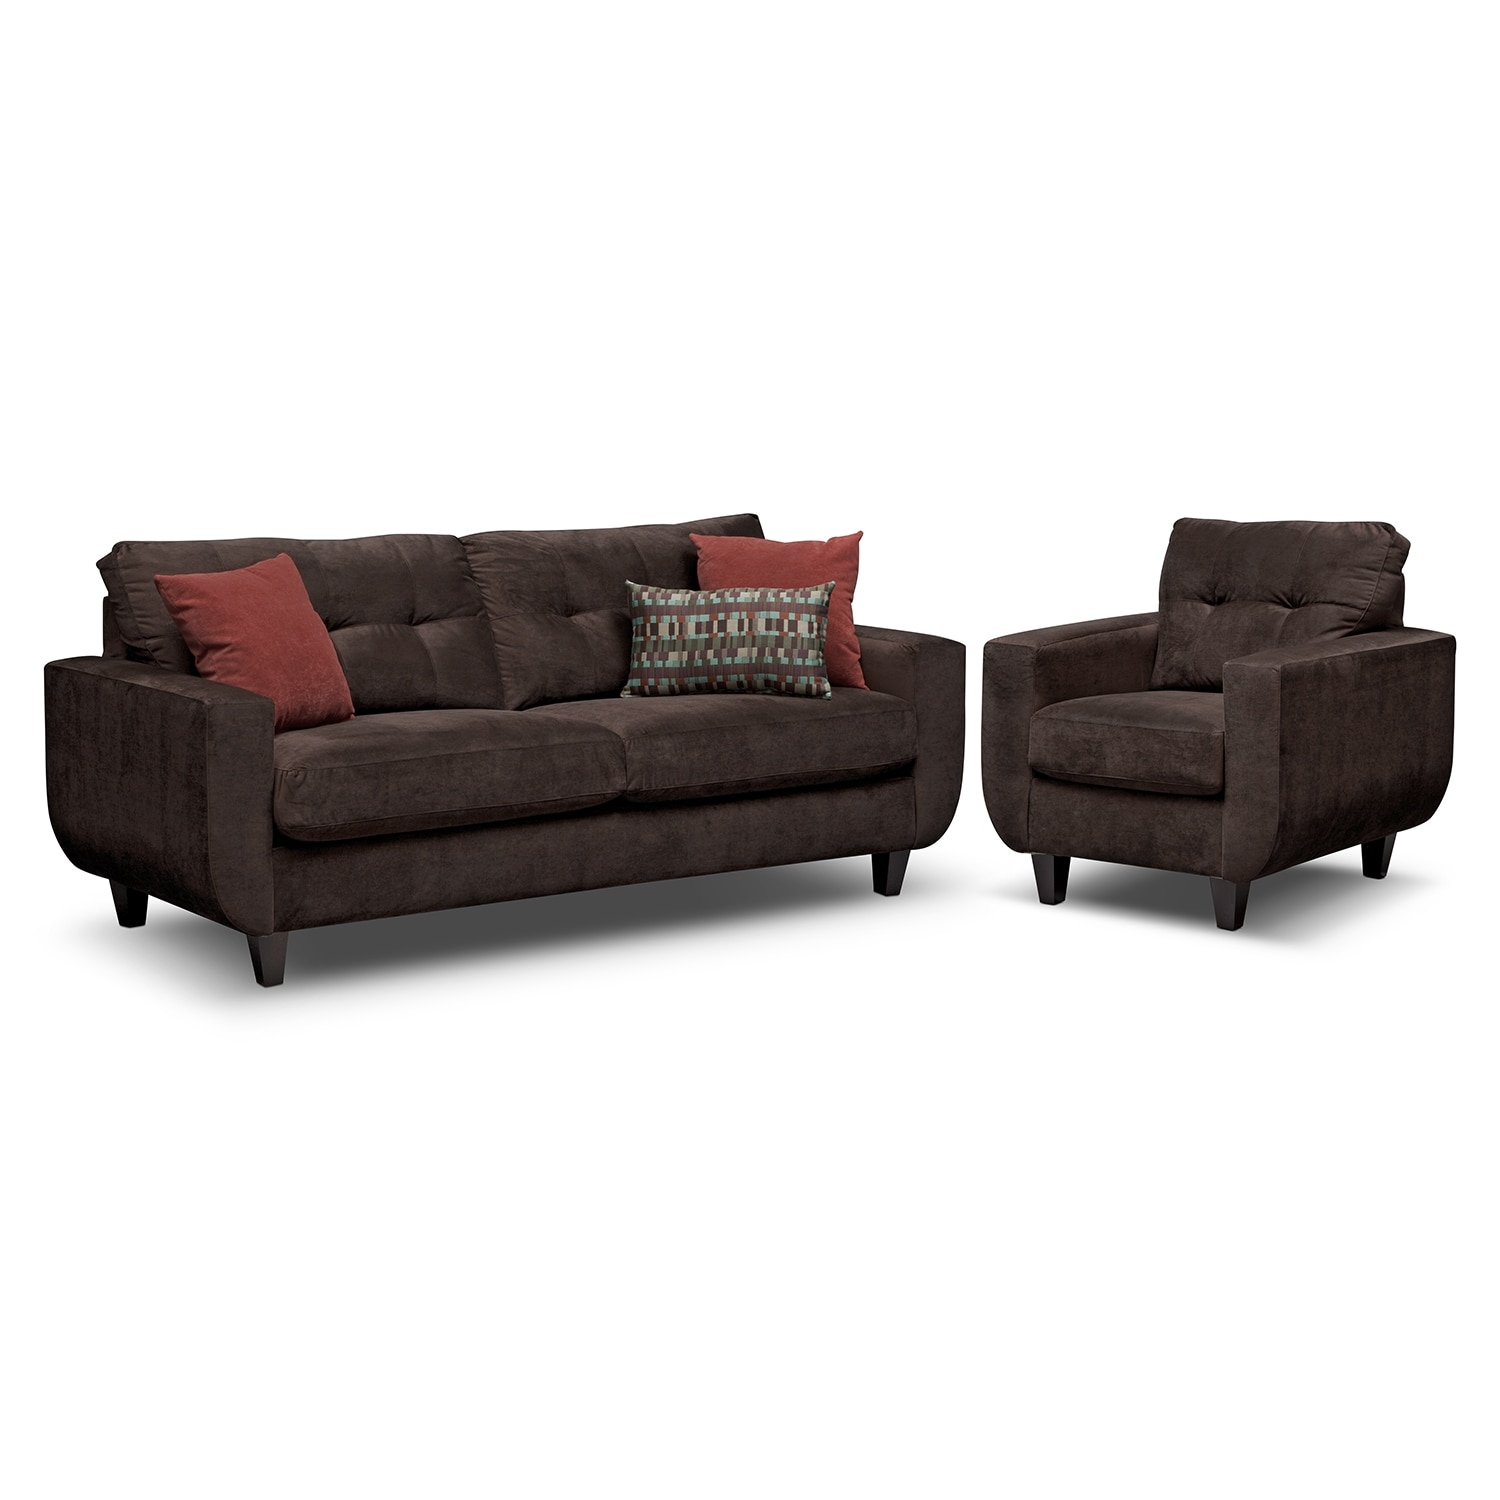 West Village Sofa and Chair Set - Chocolate